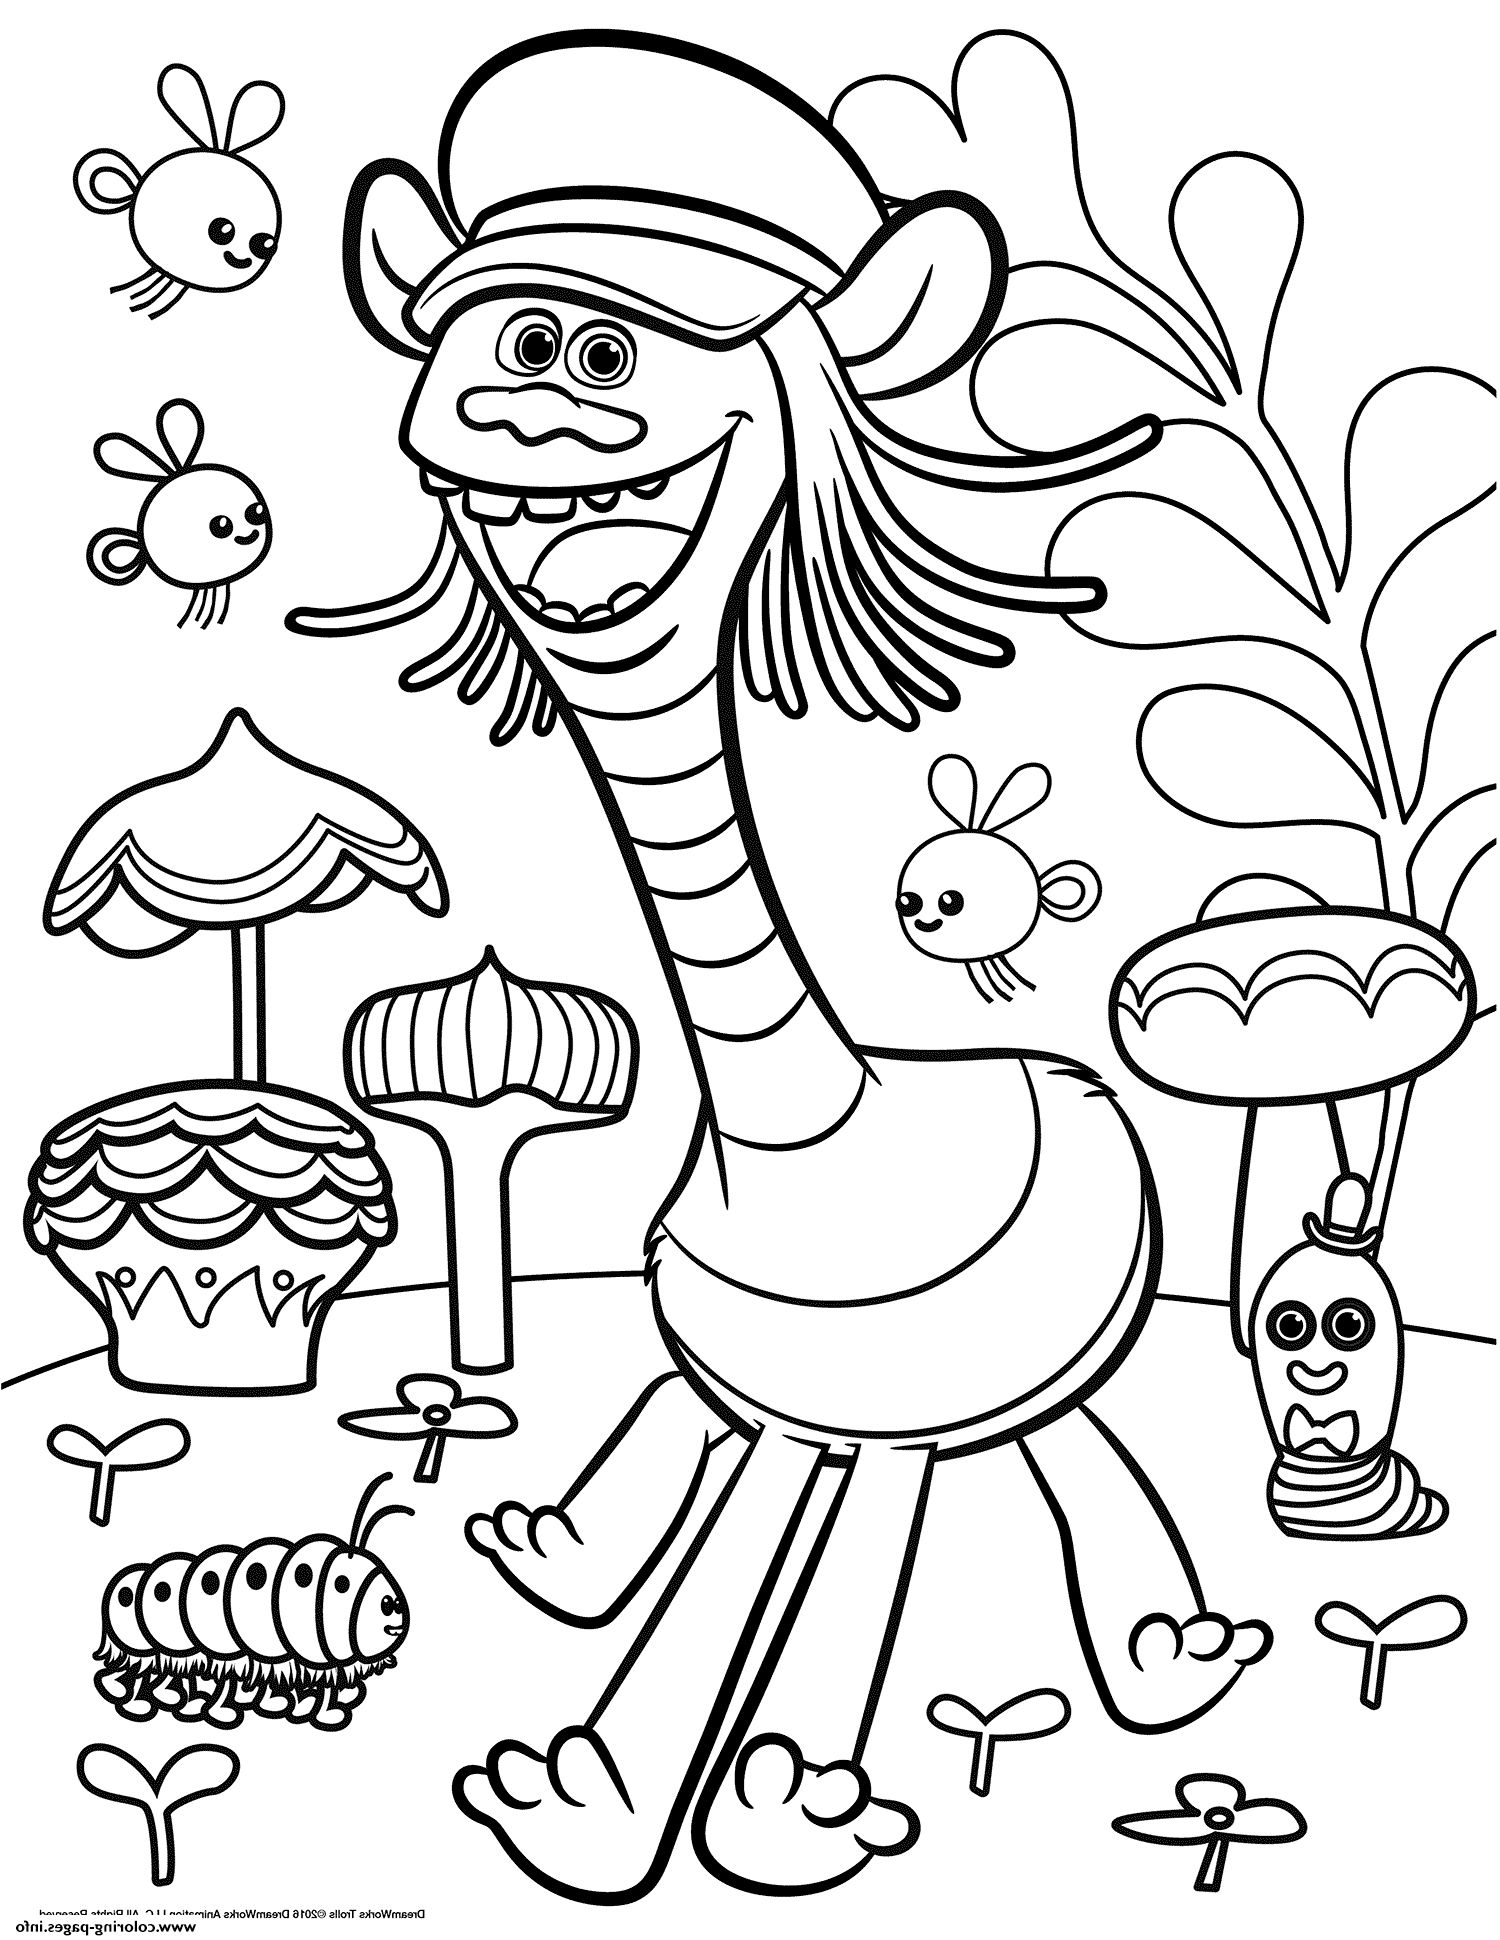 Coloring pages trolls - Image Result For Trolls Coloring Pages